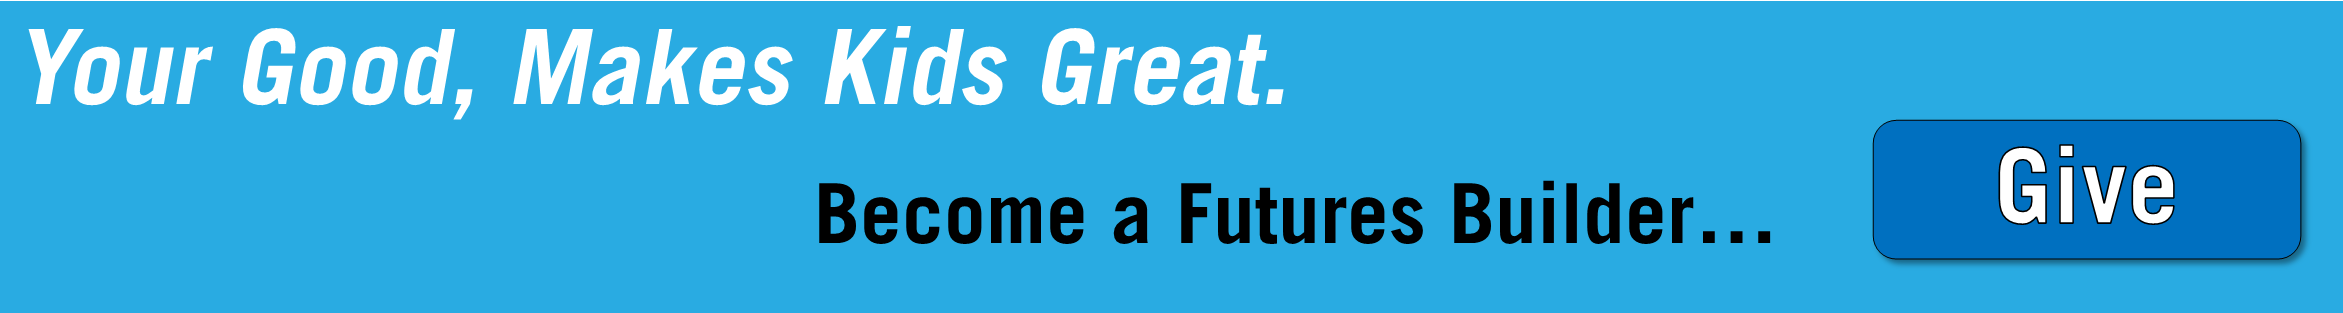 Futures Builder call to action with Become a .png